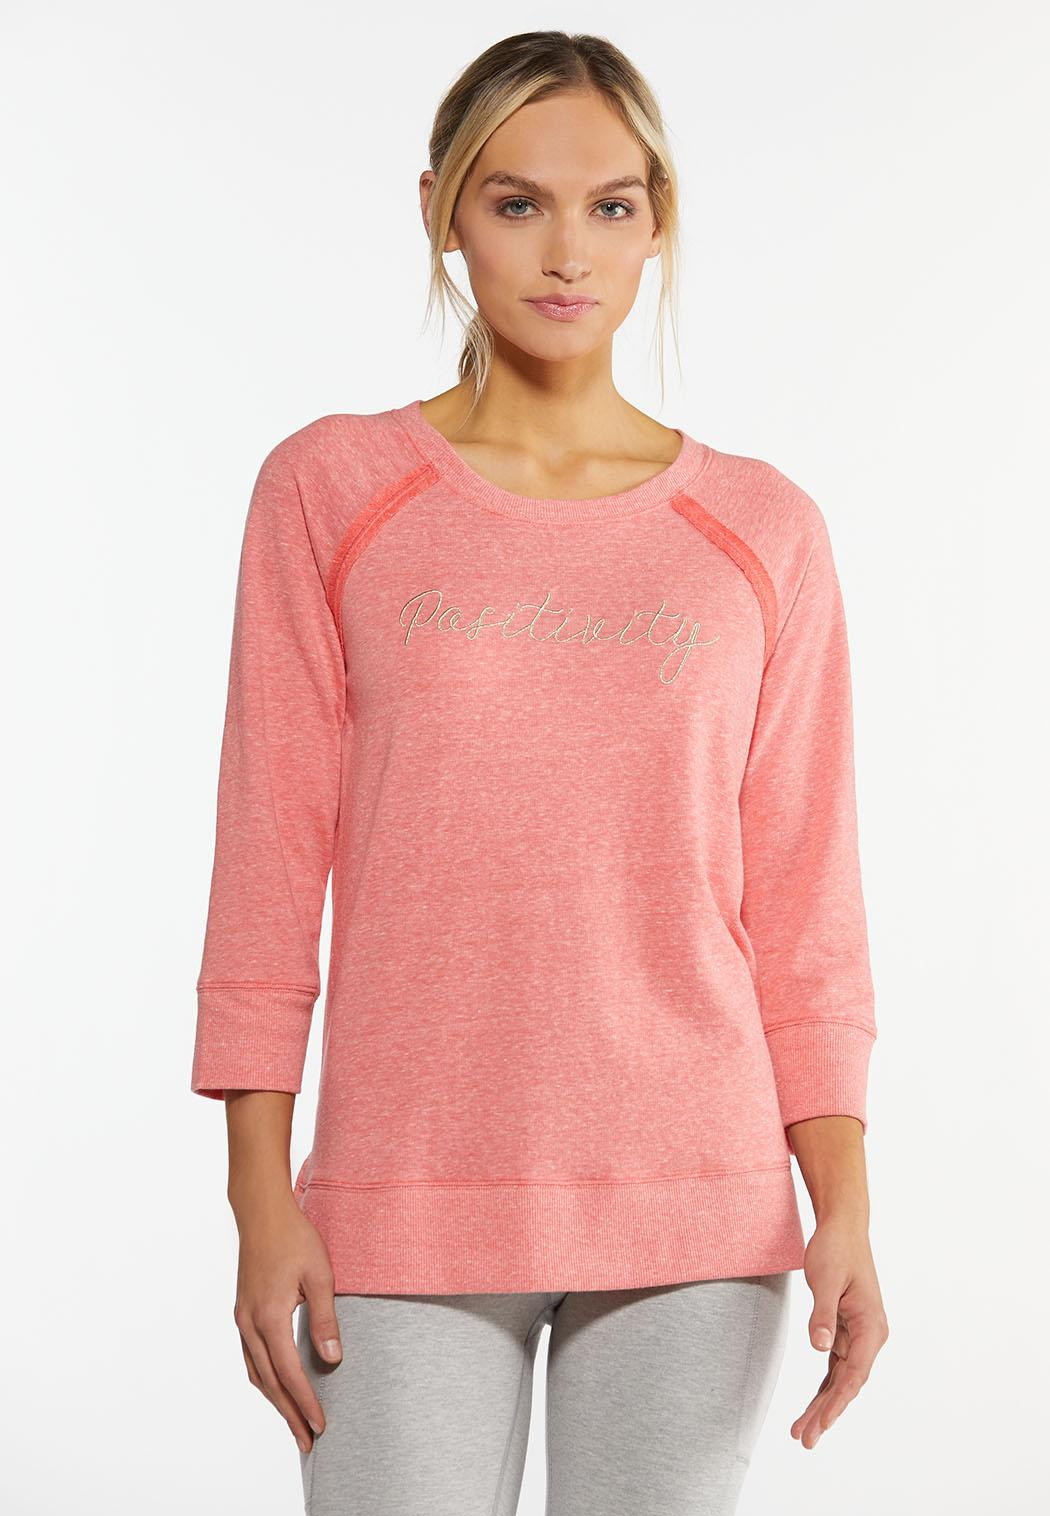 French Terry Athleisure Top